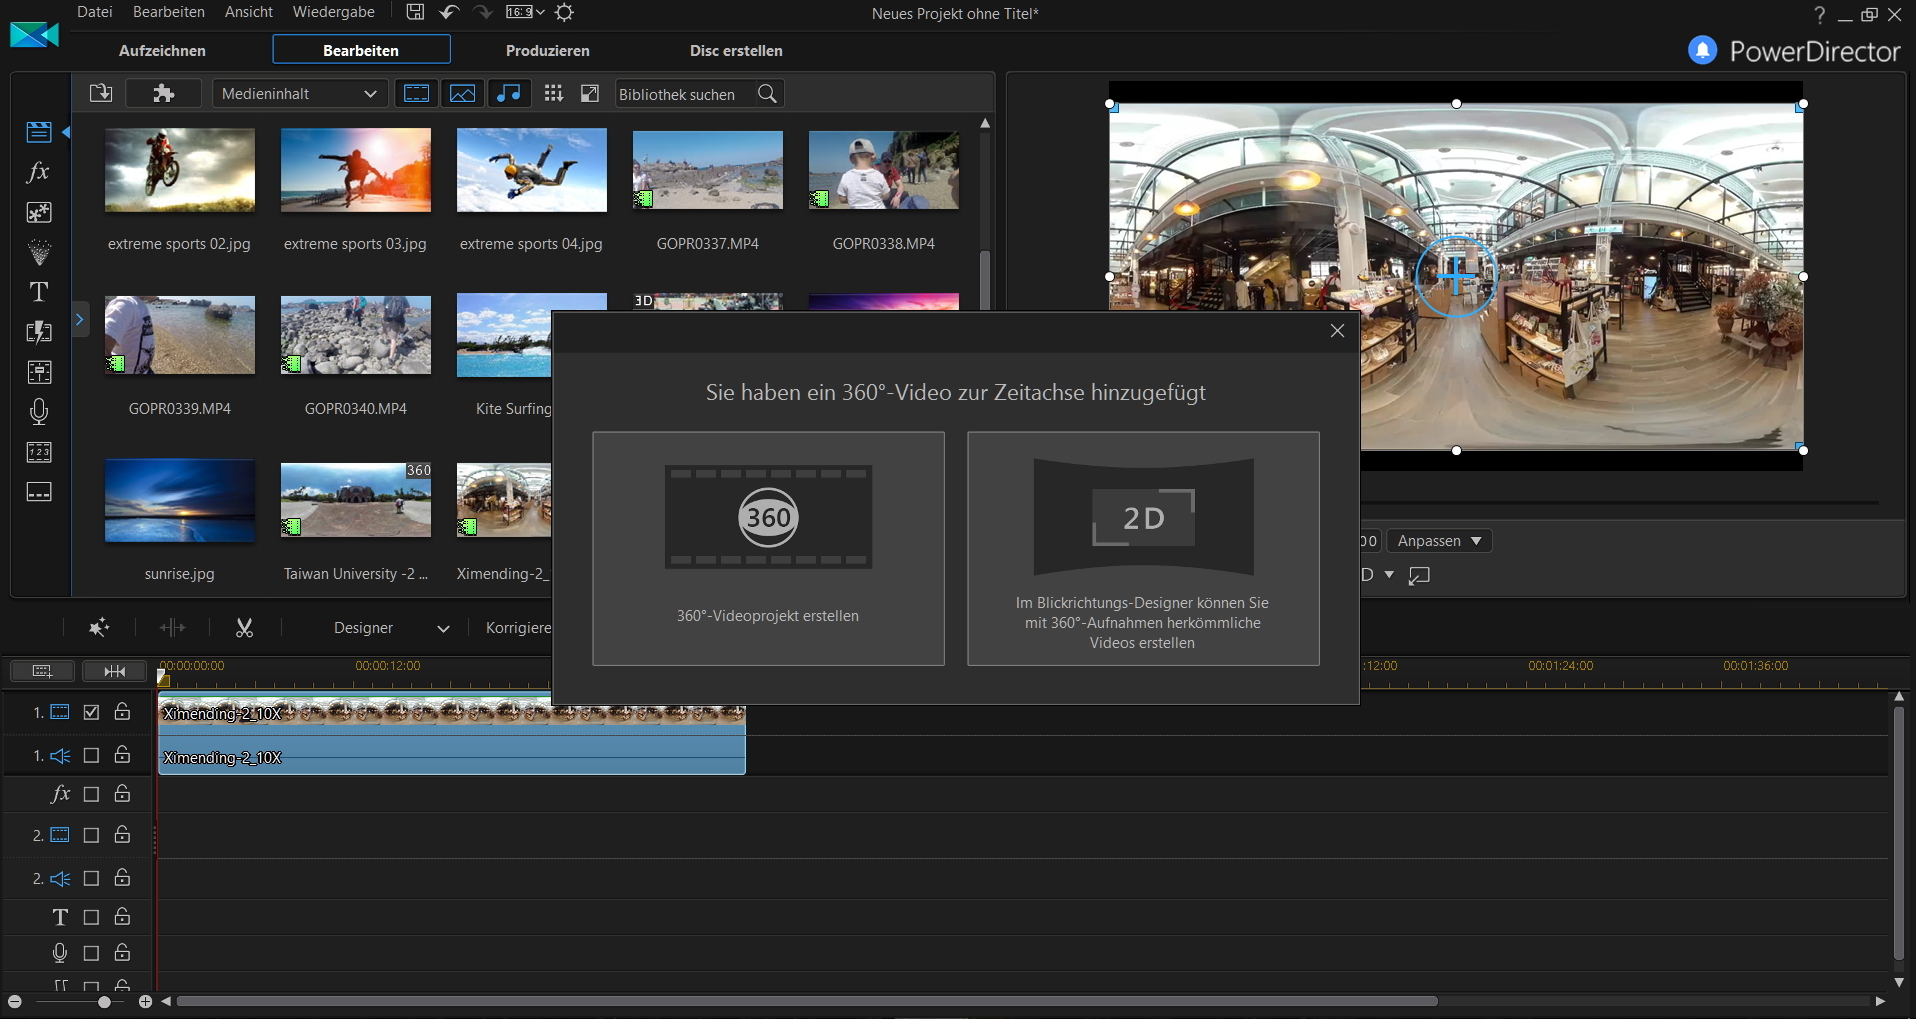 PowerDirector 16 delivers high-end performance editing for both standard and º video. Built to be flexible, yet powerful, PowerDirector remains the definite video editing solution for anyone, whether they are beginners or professionals.